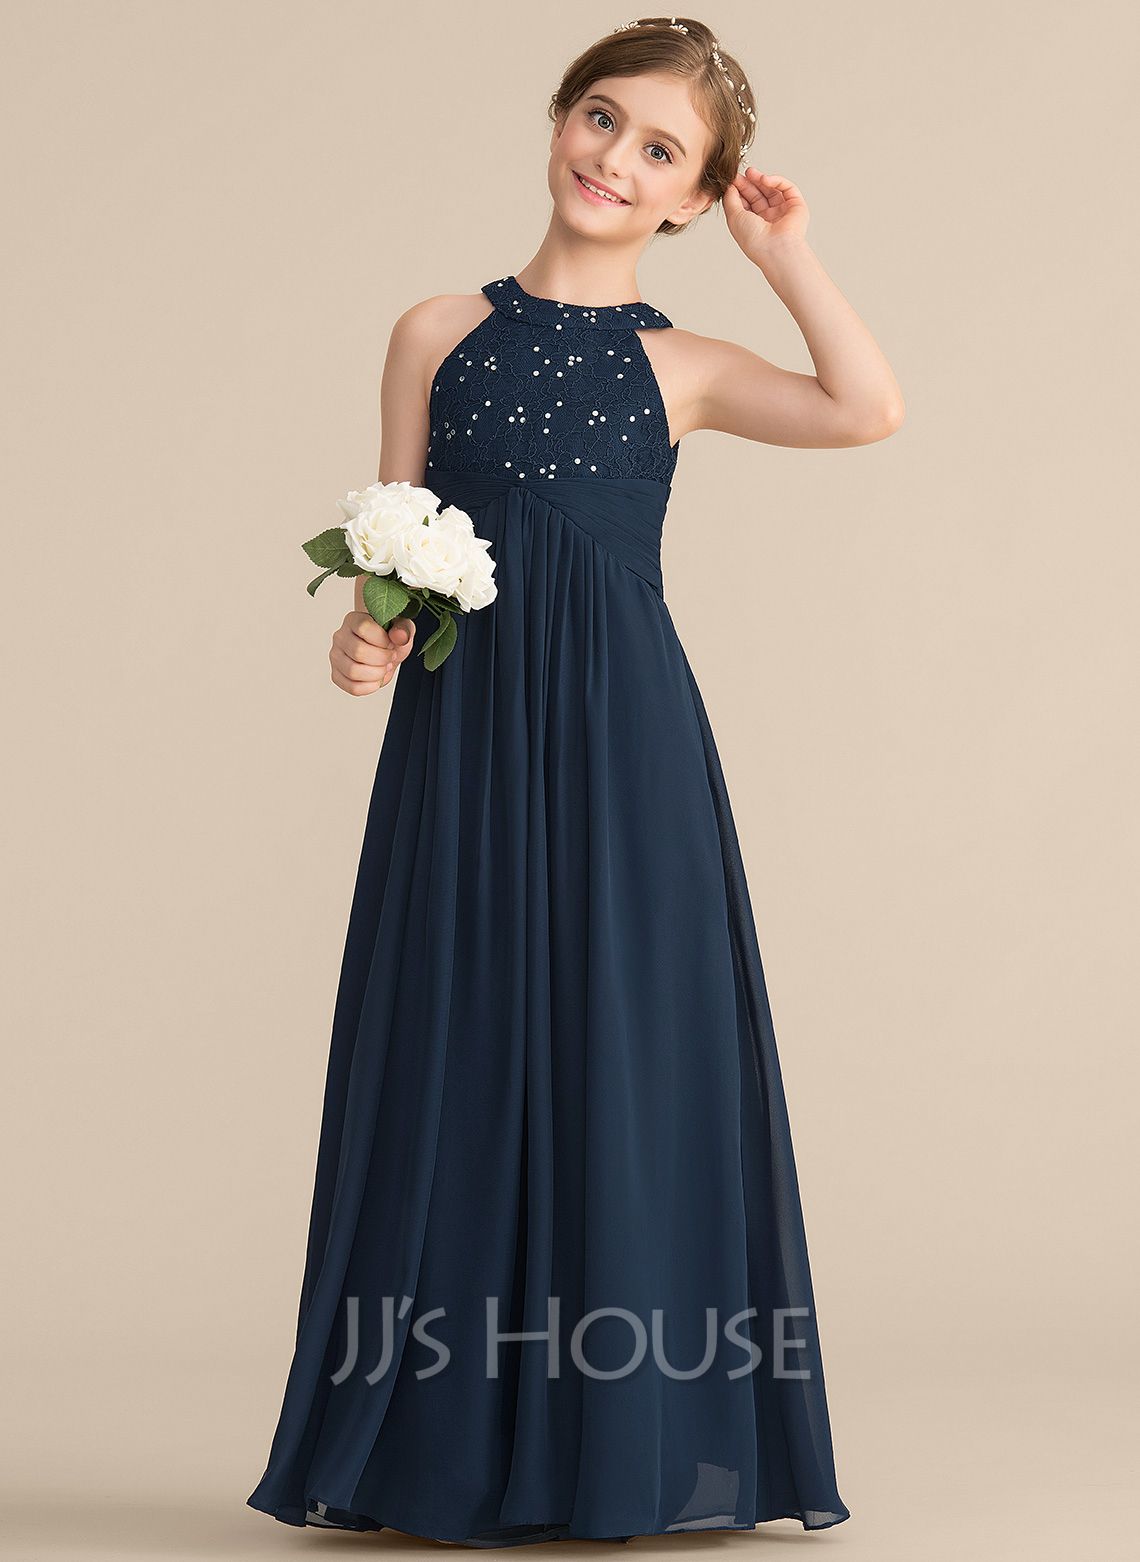 A-Line Scoop Neck Floor-Length Chiffon Lace Junior Bridesmaid Dress With Ruffle Beading